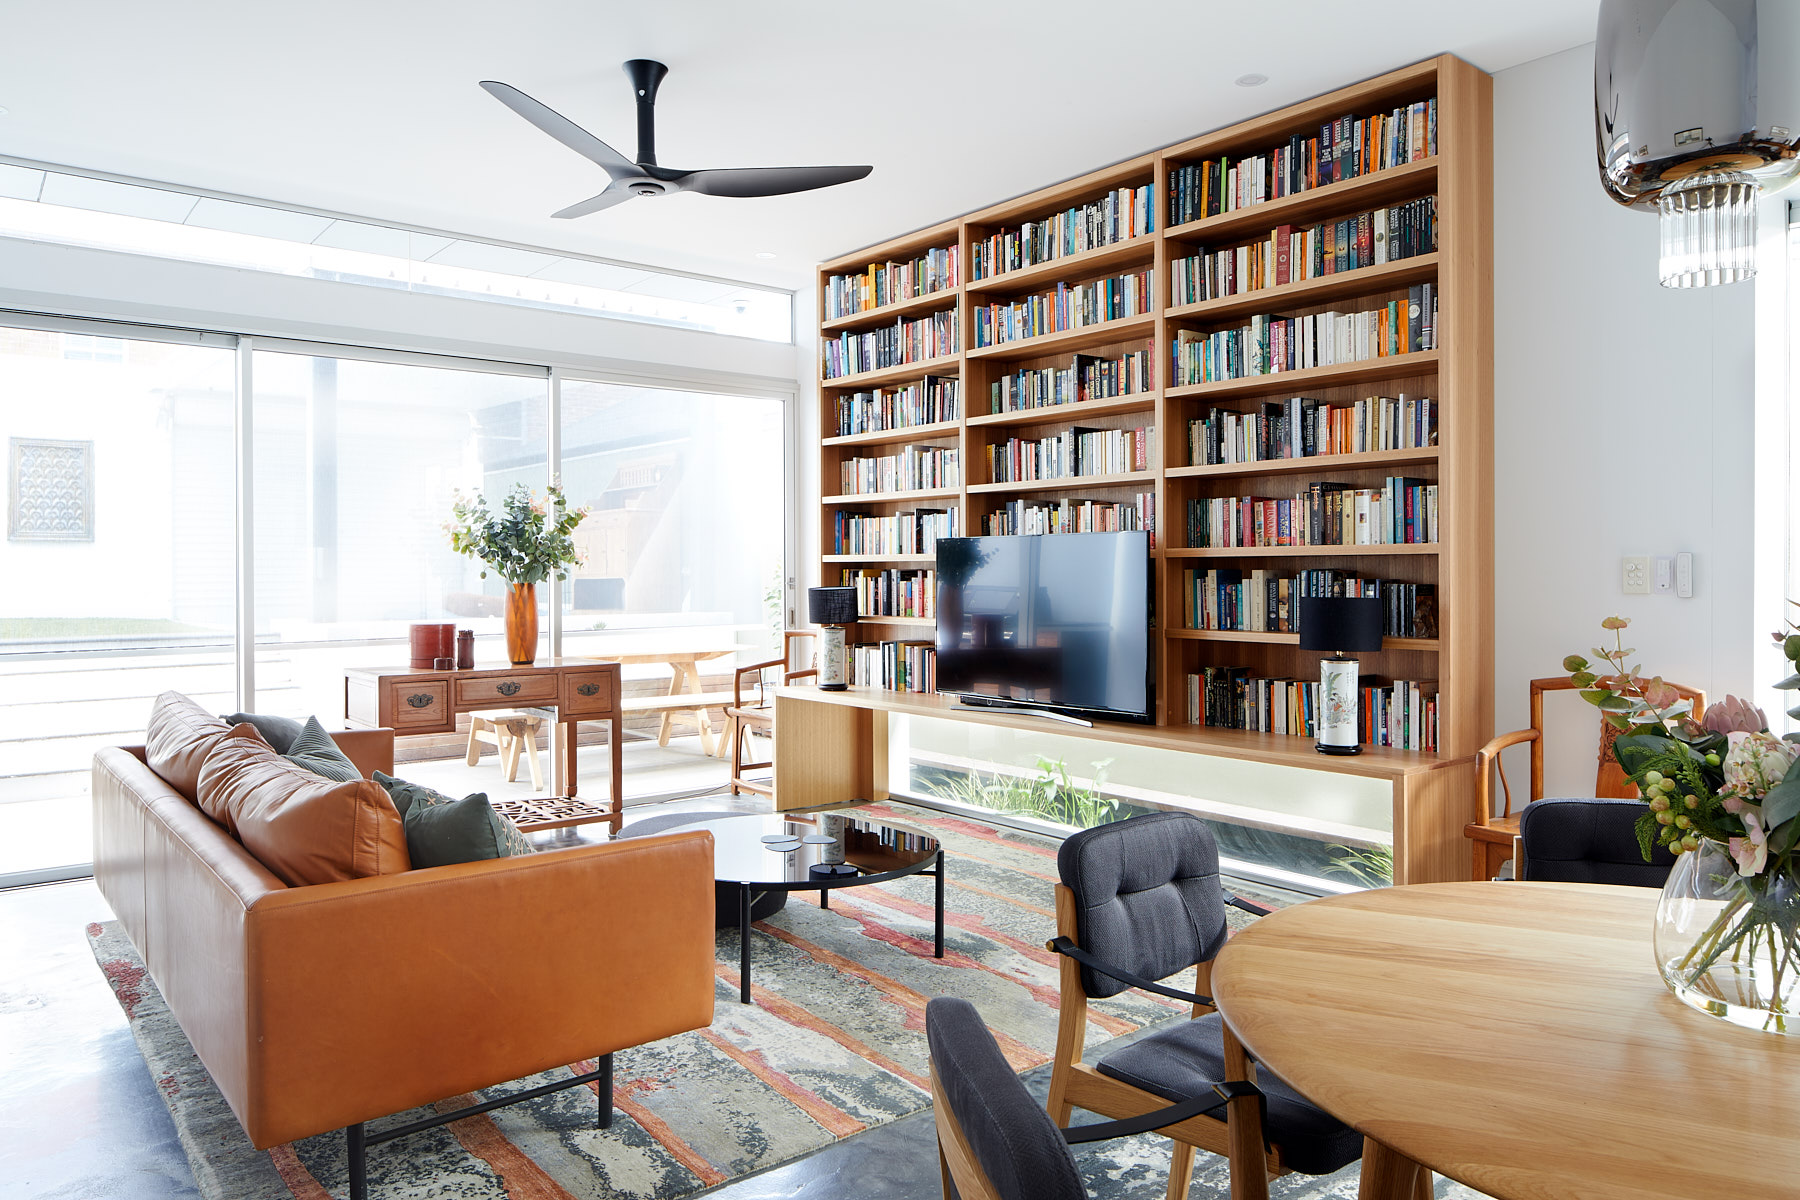 Living room with a unique bookcase over a window.